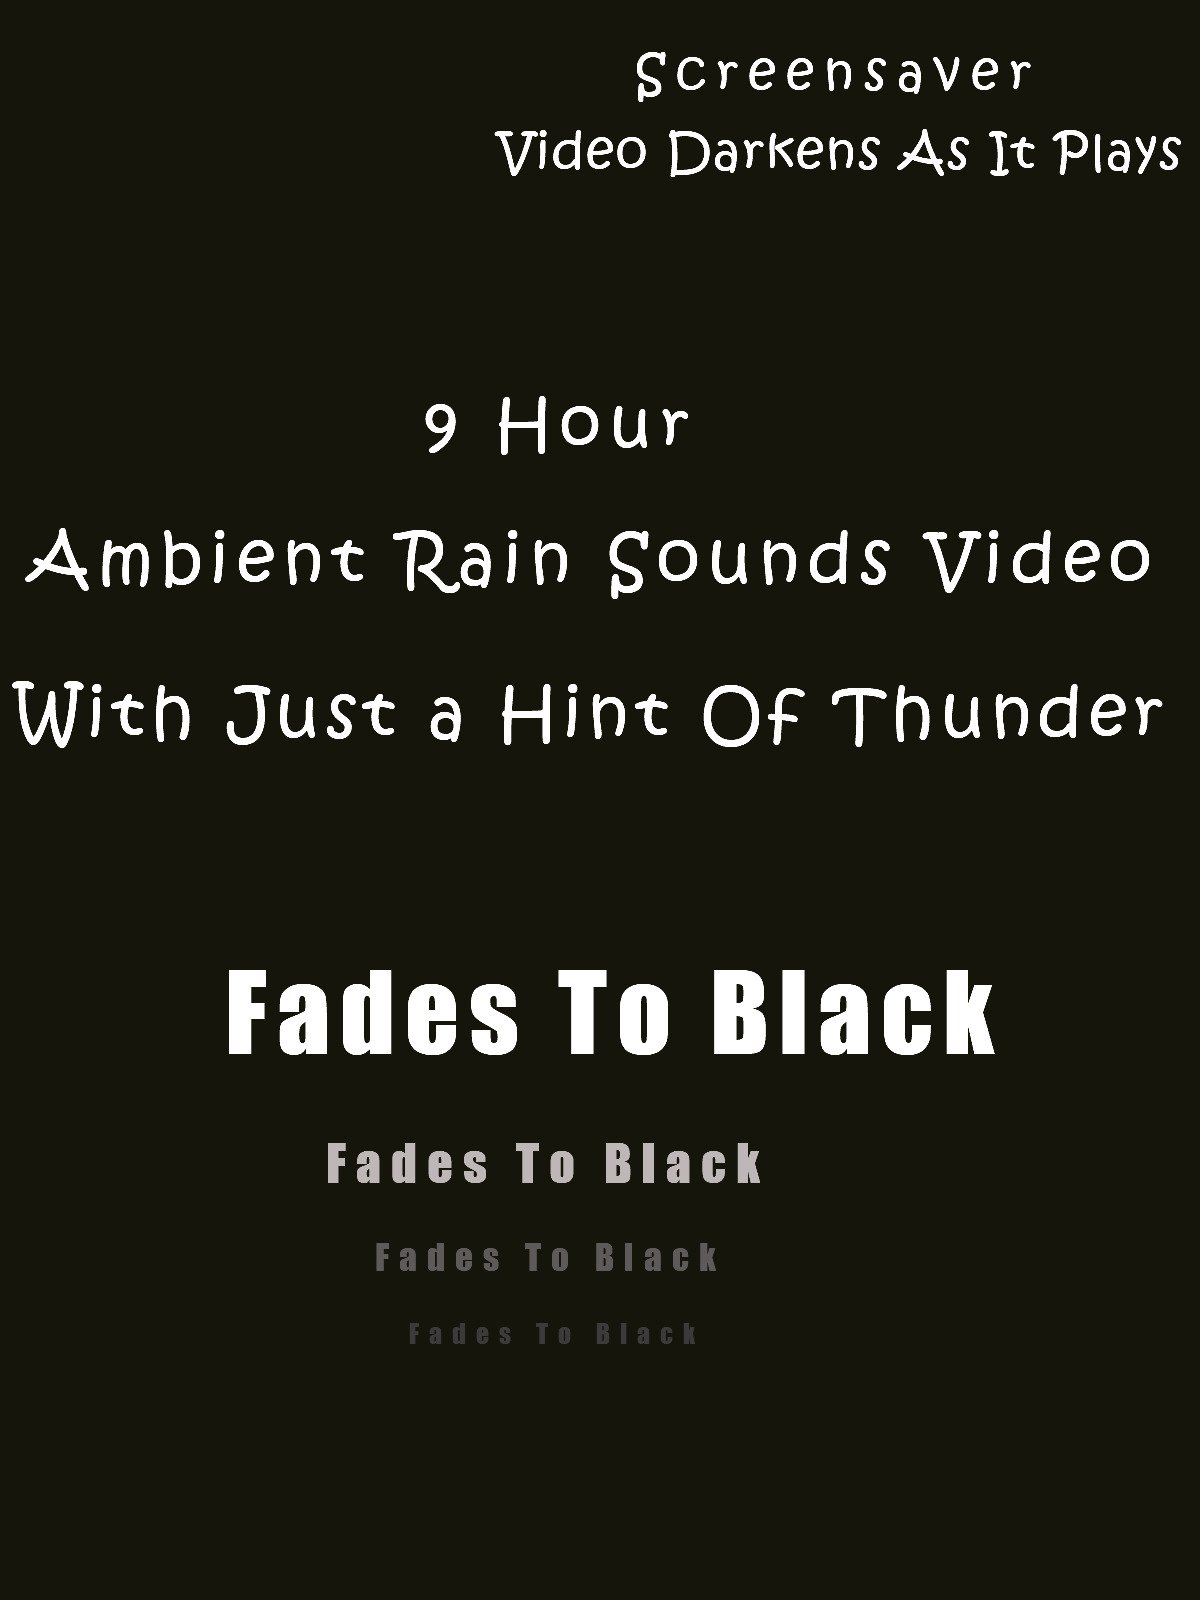 9 Hour Ambient Rain Sounds Video With Just a Hint Of Thunder Fades To Black